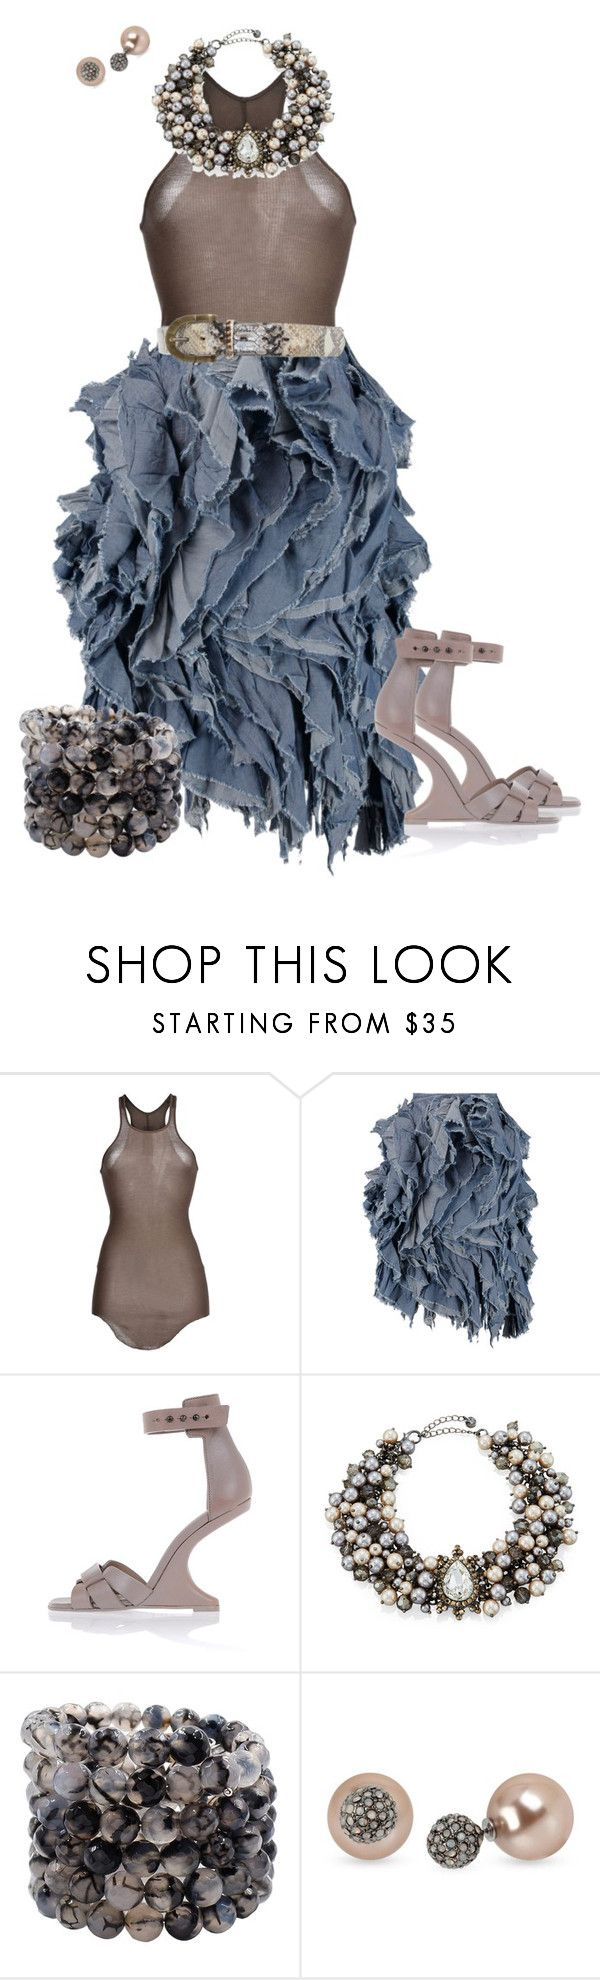 """Frayed Denim Skirt"" by hope-houston on Polyvore featuring Rick Owens, Marques'Almeida, Lydell NYC, Savvy Cie, Betsey Johnson and Fausto Colato"